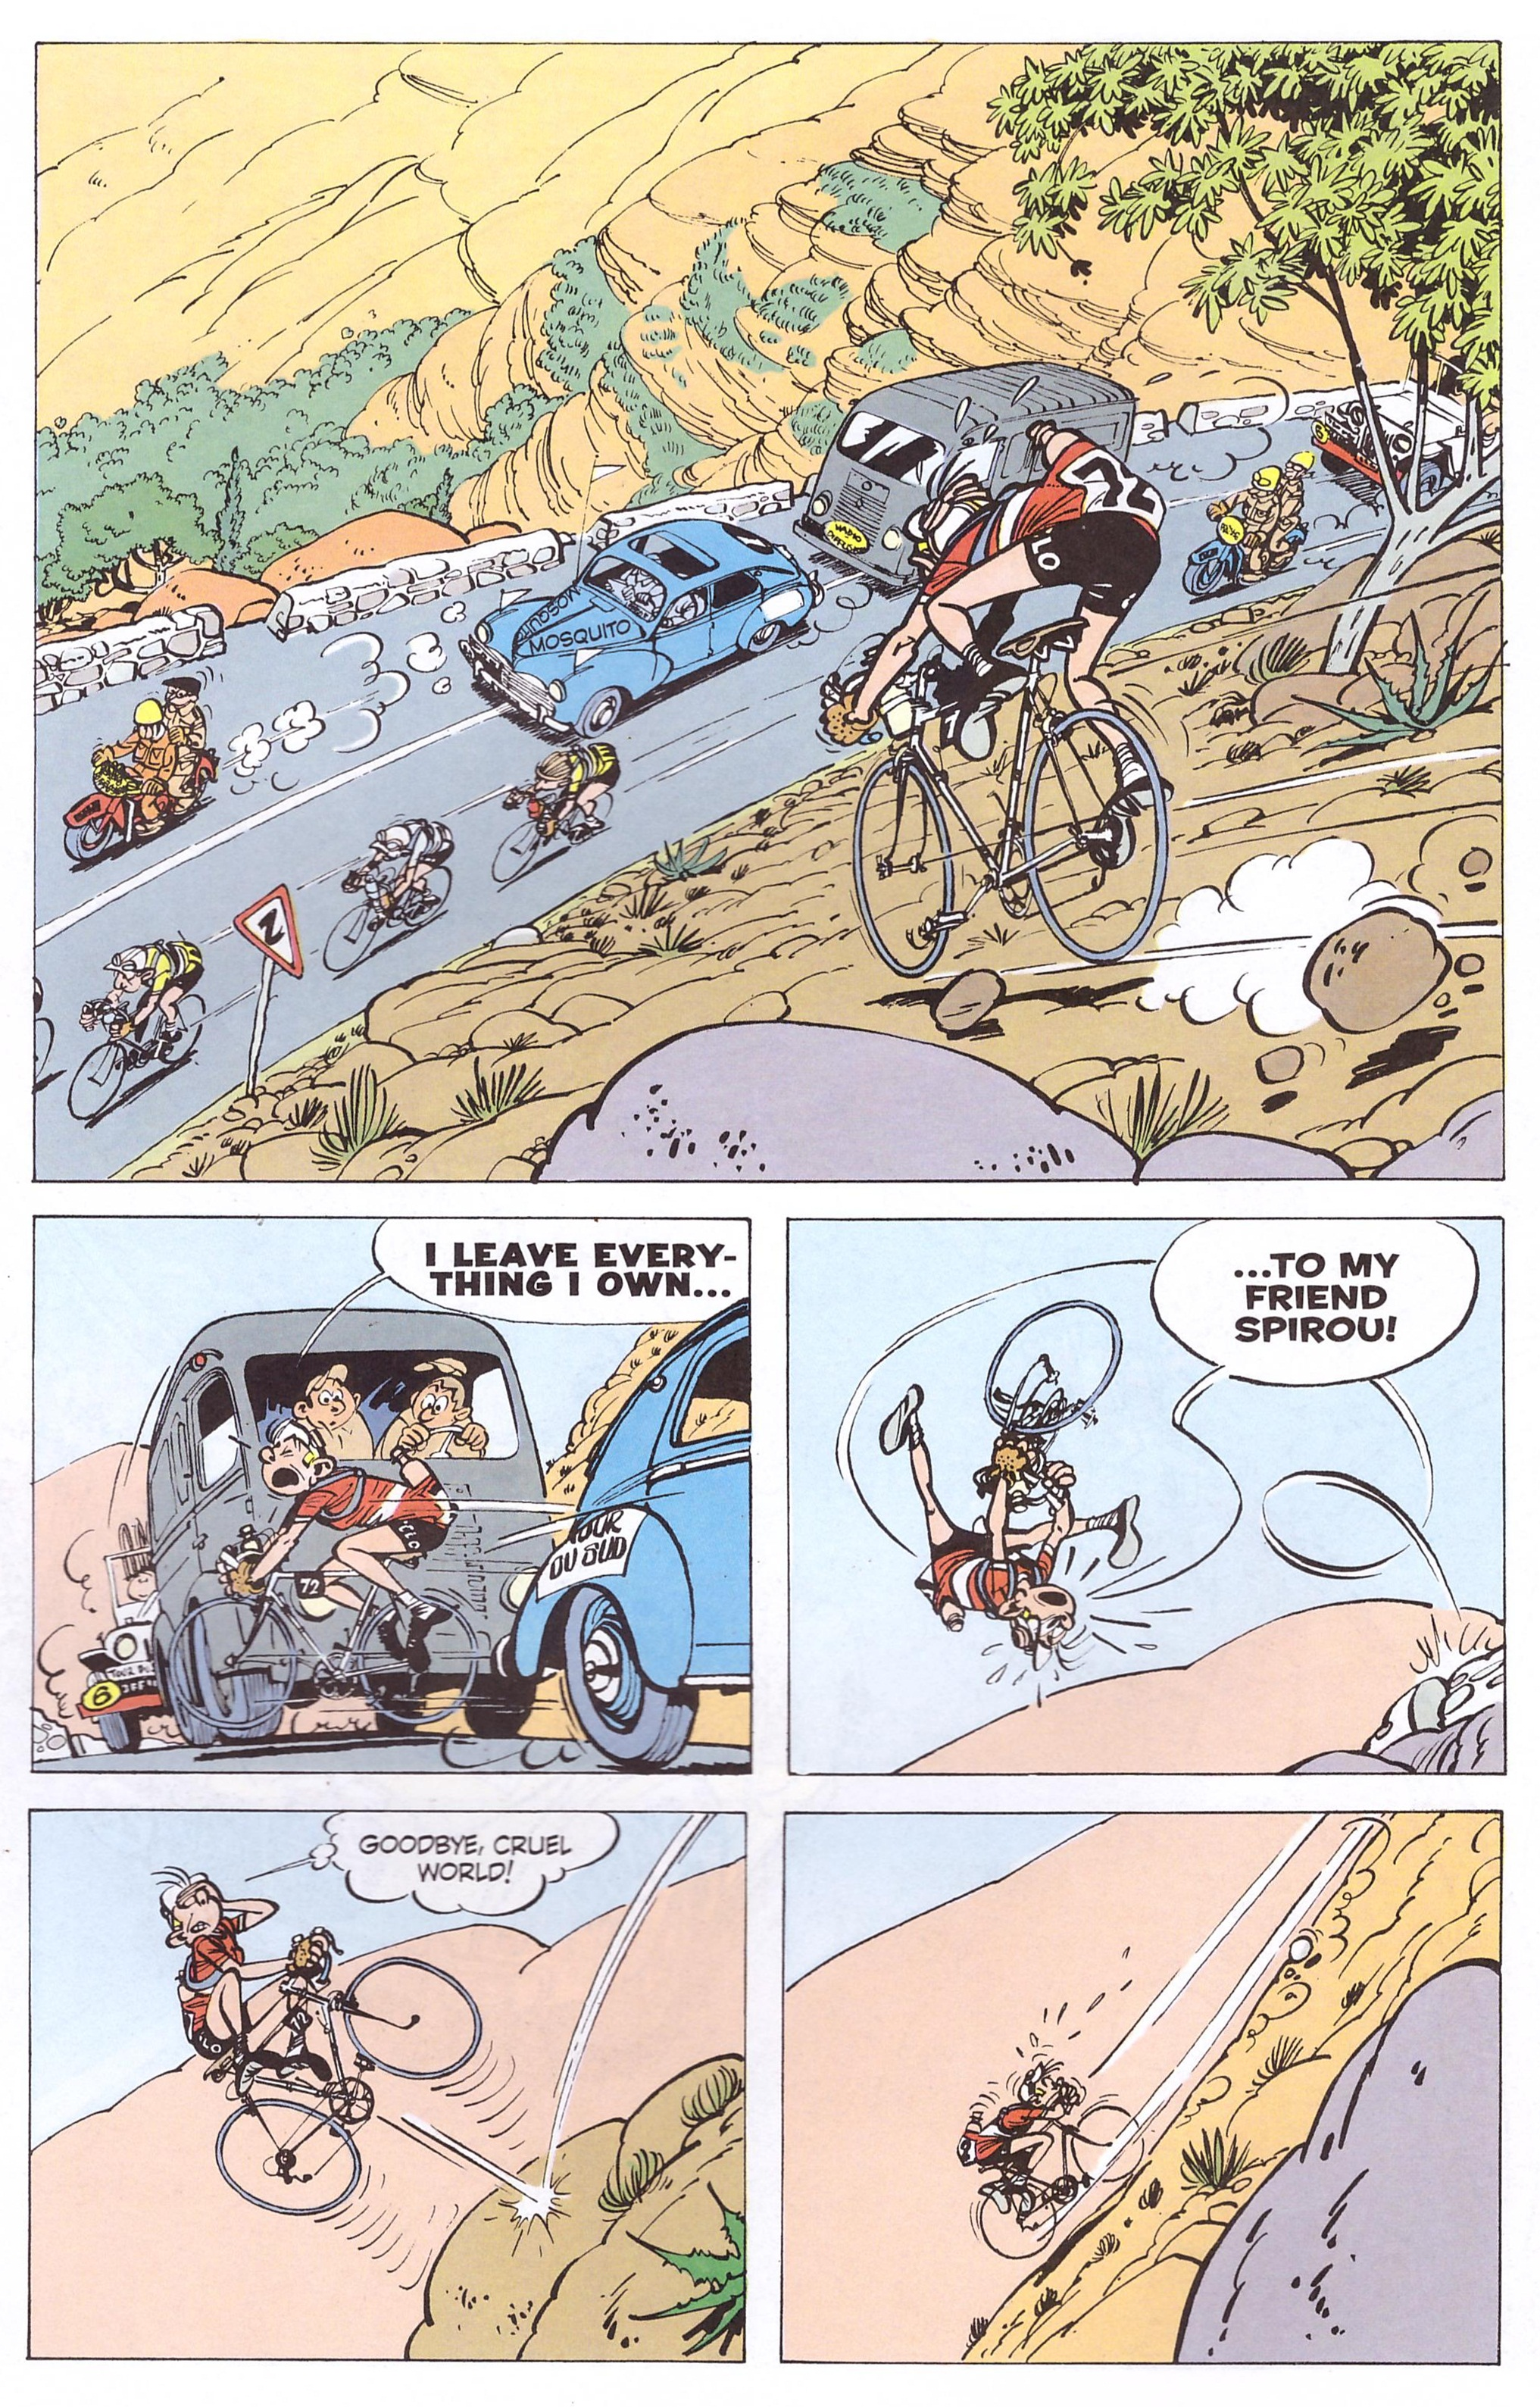 Spirou & Fantasio The Wrong Head review